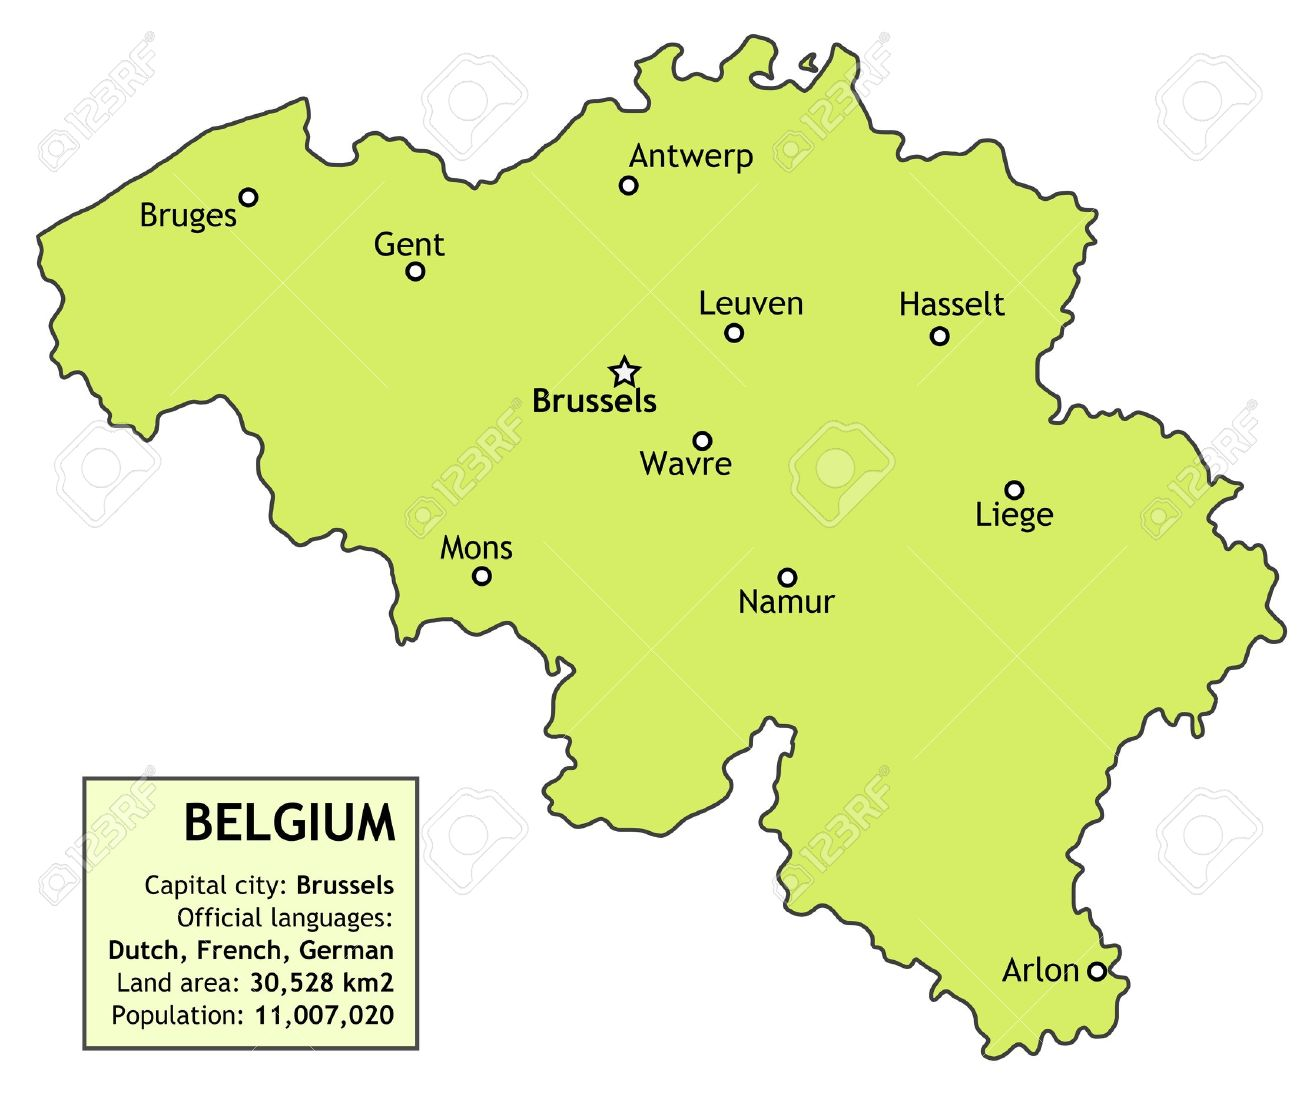 Maps Update 1000767 Belgiummap Belgium Map 64 More Maps – Map of Belgium with Cities